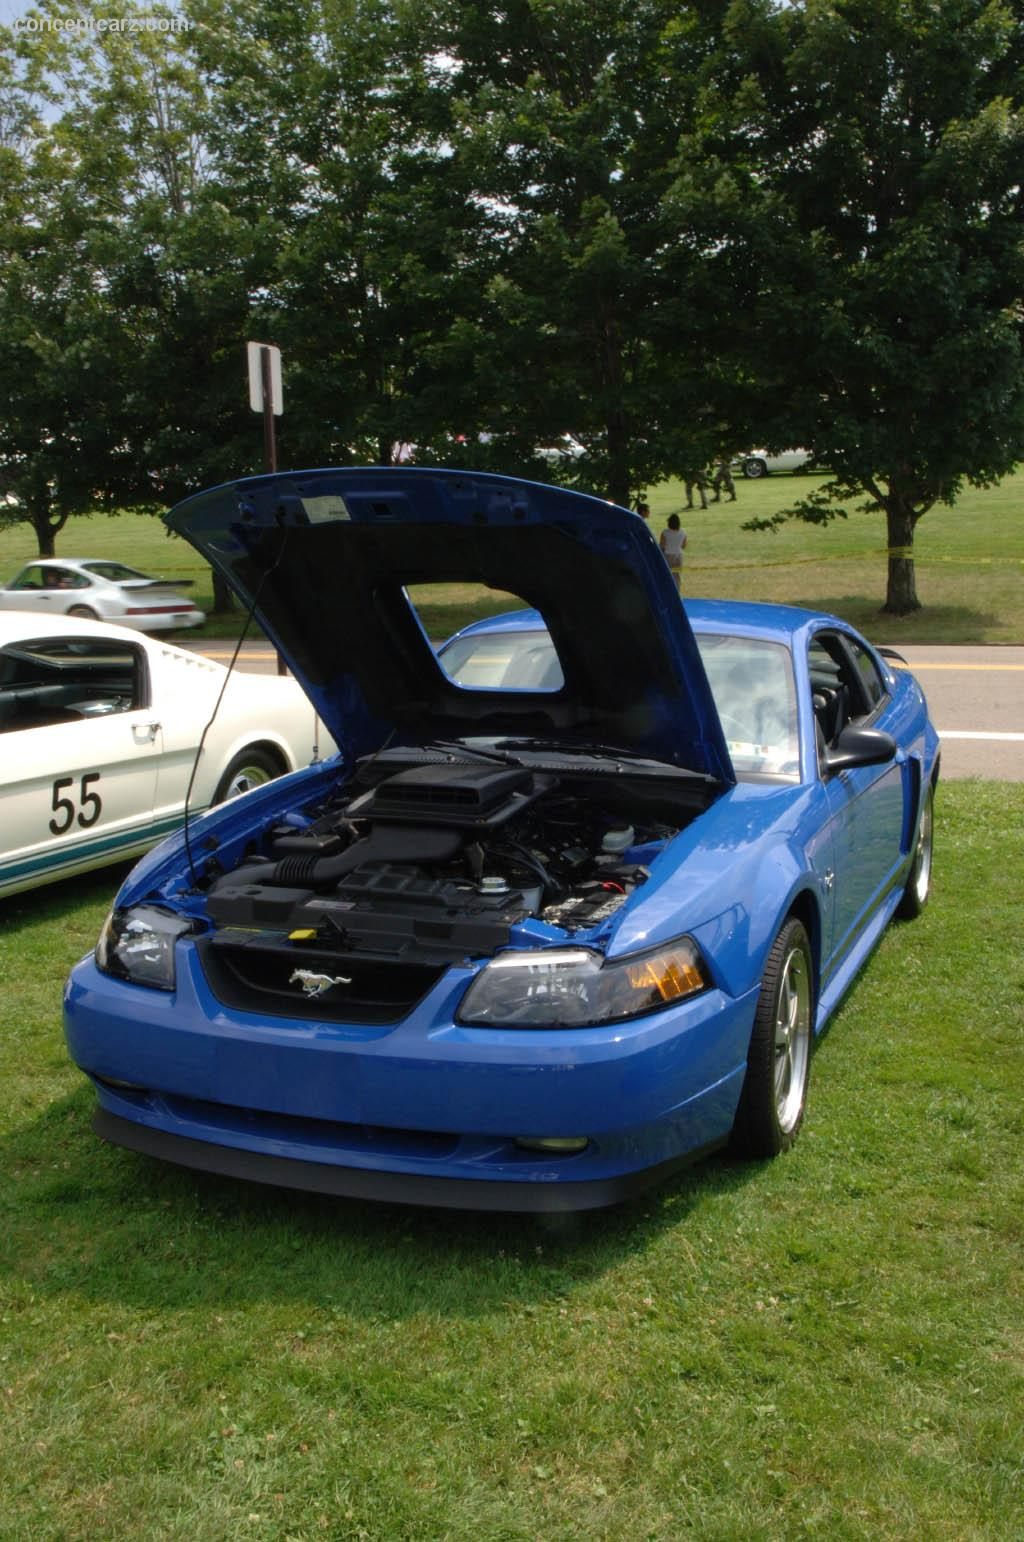 2003 ford mustang at the pittsburgh vintage grand prix car. Black Bedroom Furniture Sets. Home Design Ideas